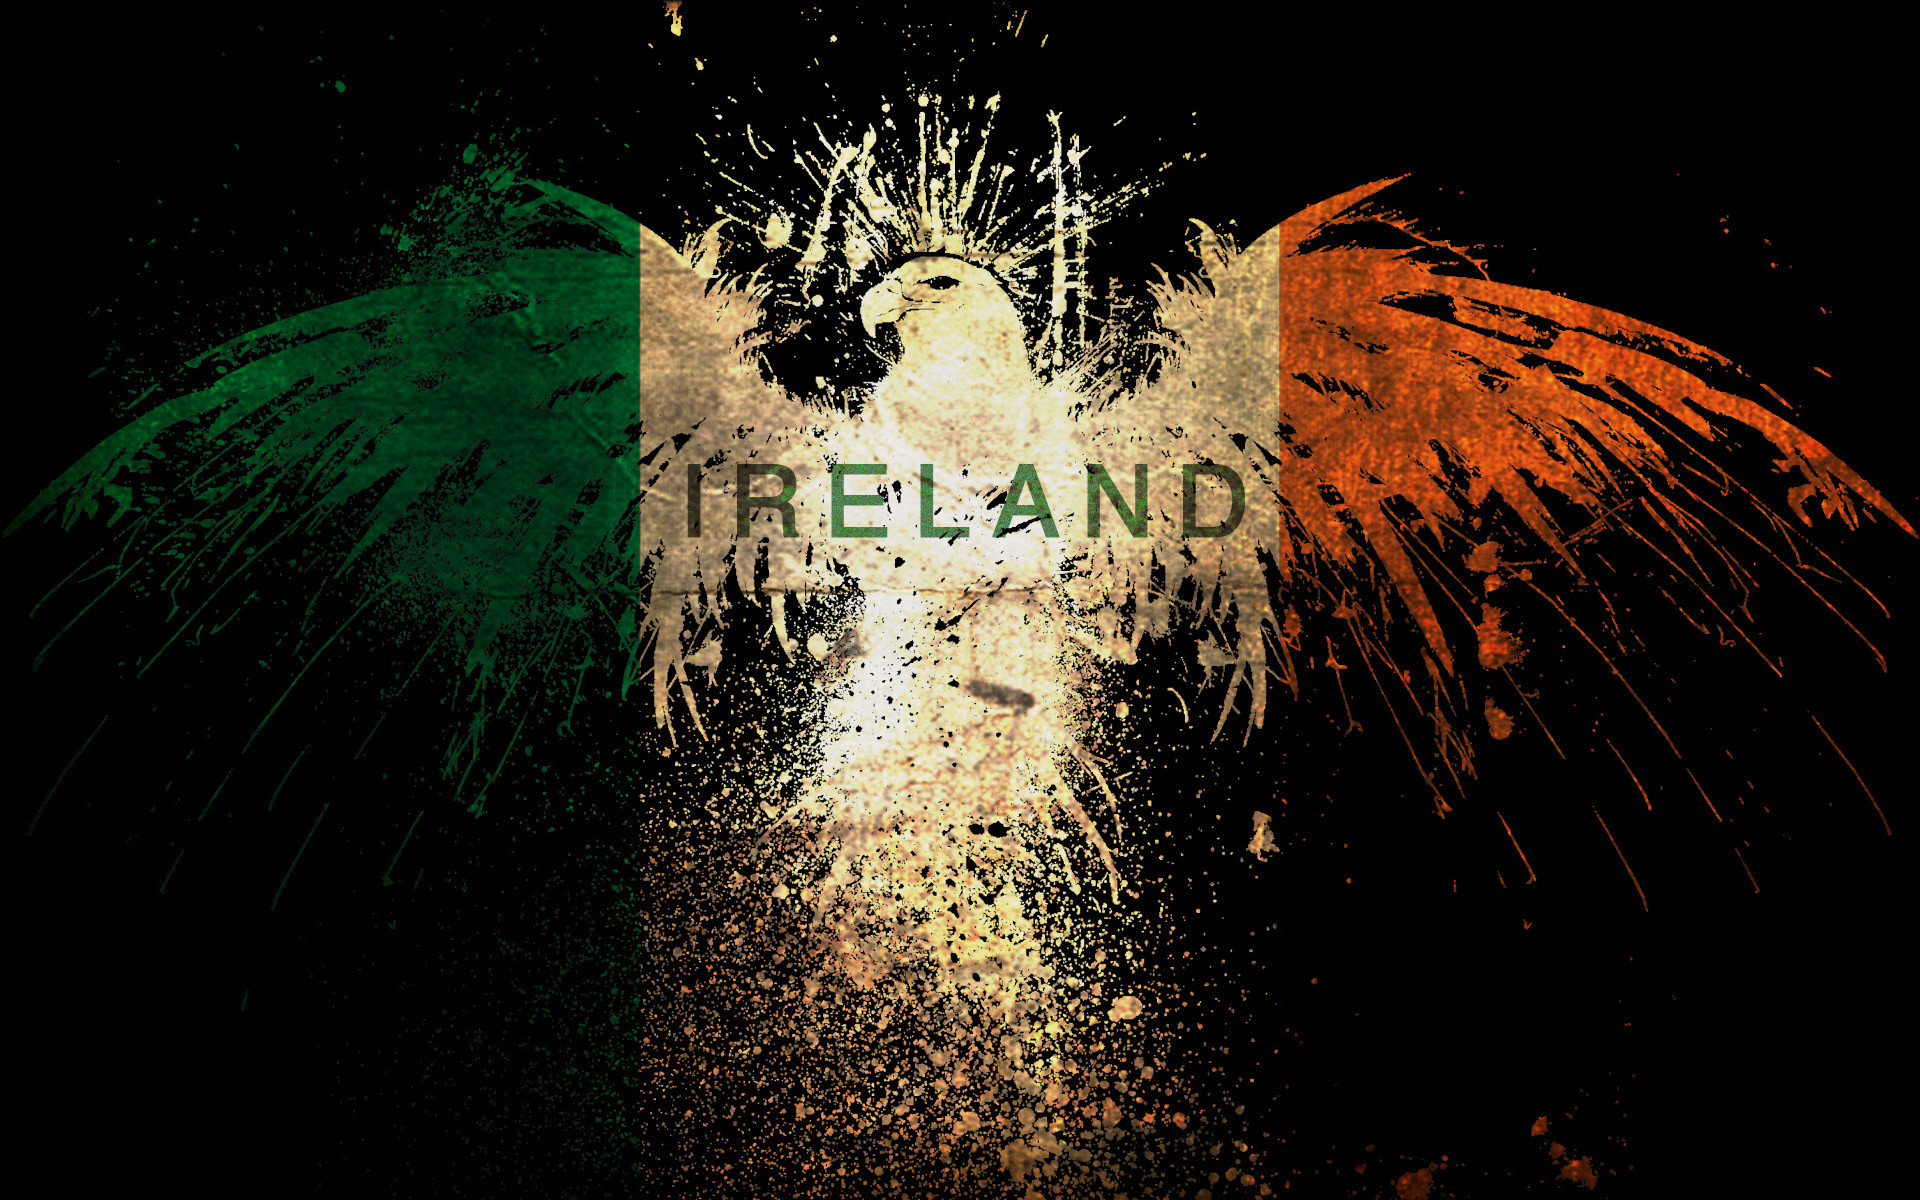 1920x1200 Cool Irish Wallpaper